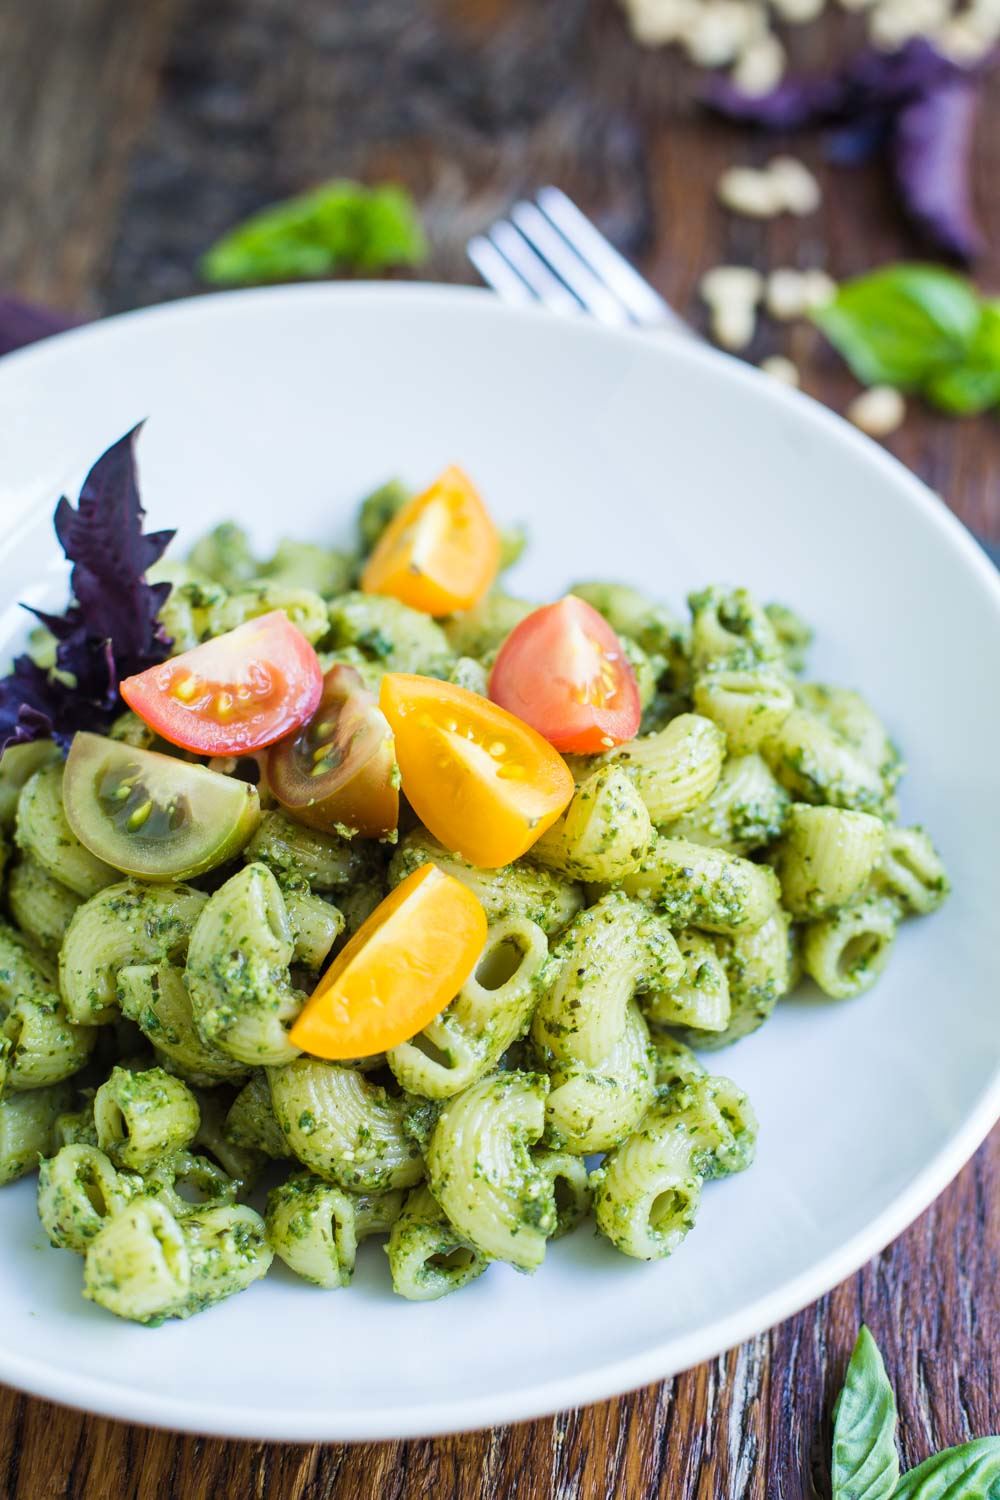 Vegan Pesto Pasta- this pasta recipe is very easy to throw together and perfect for those summer months when fresh basil is growing rapidly!